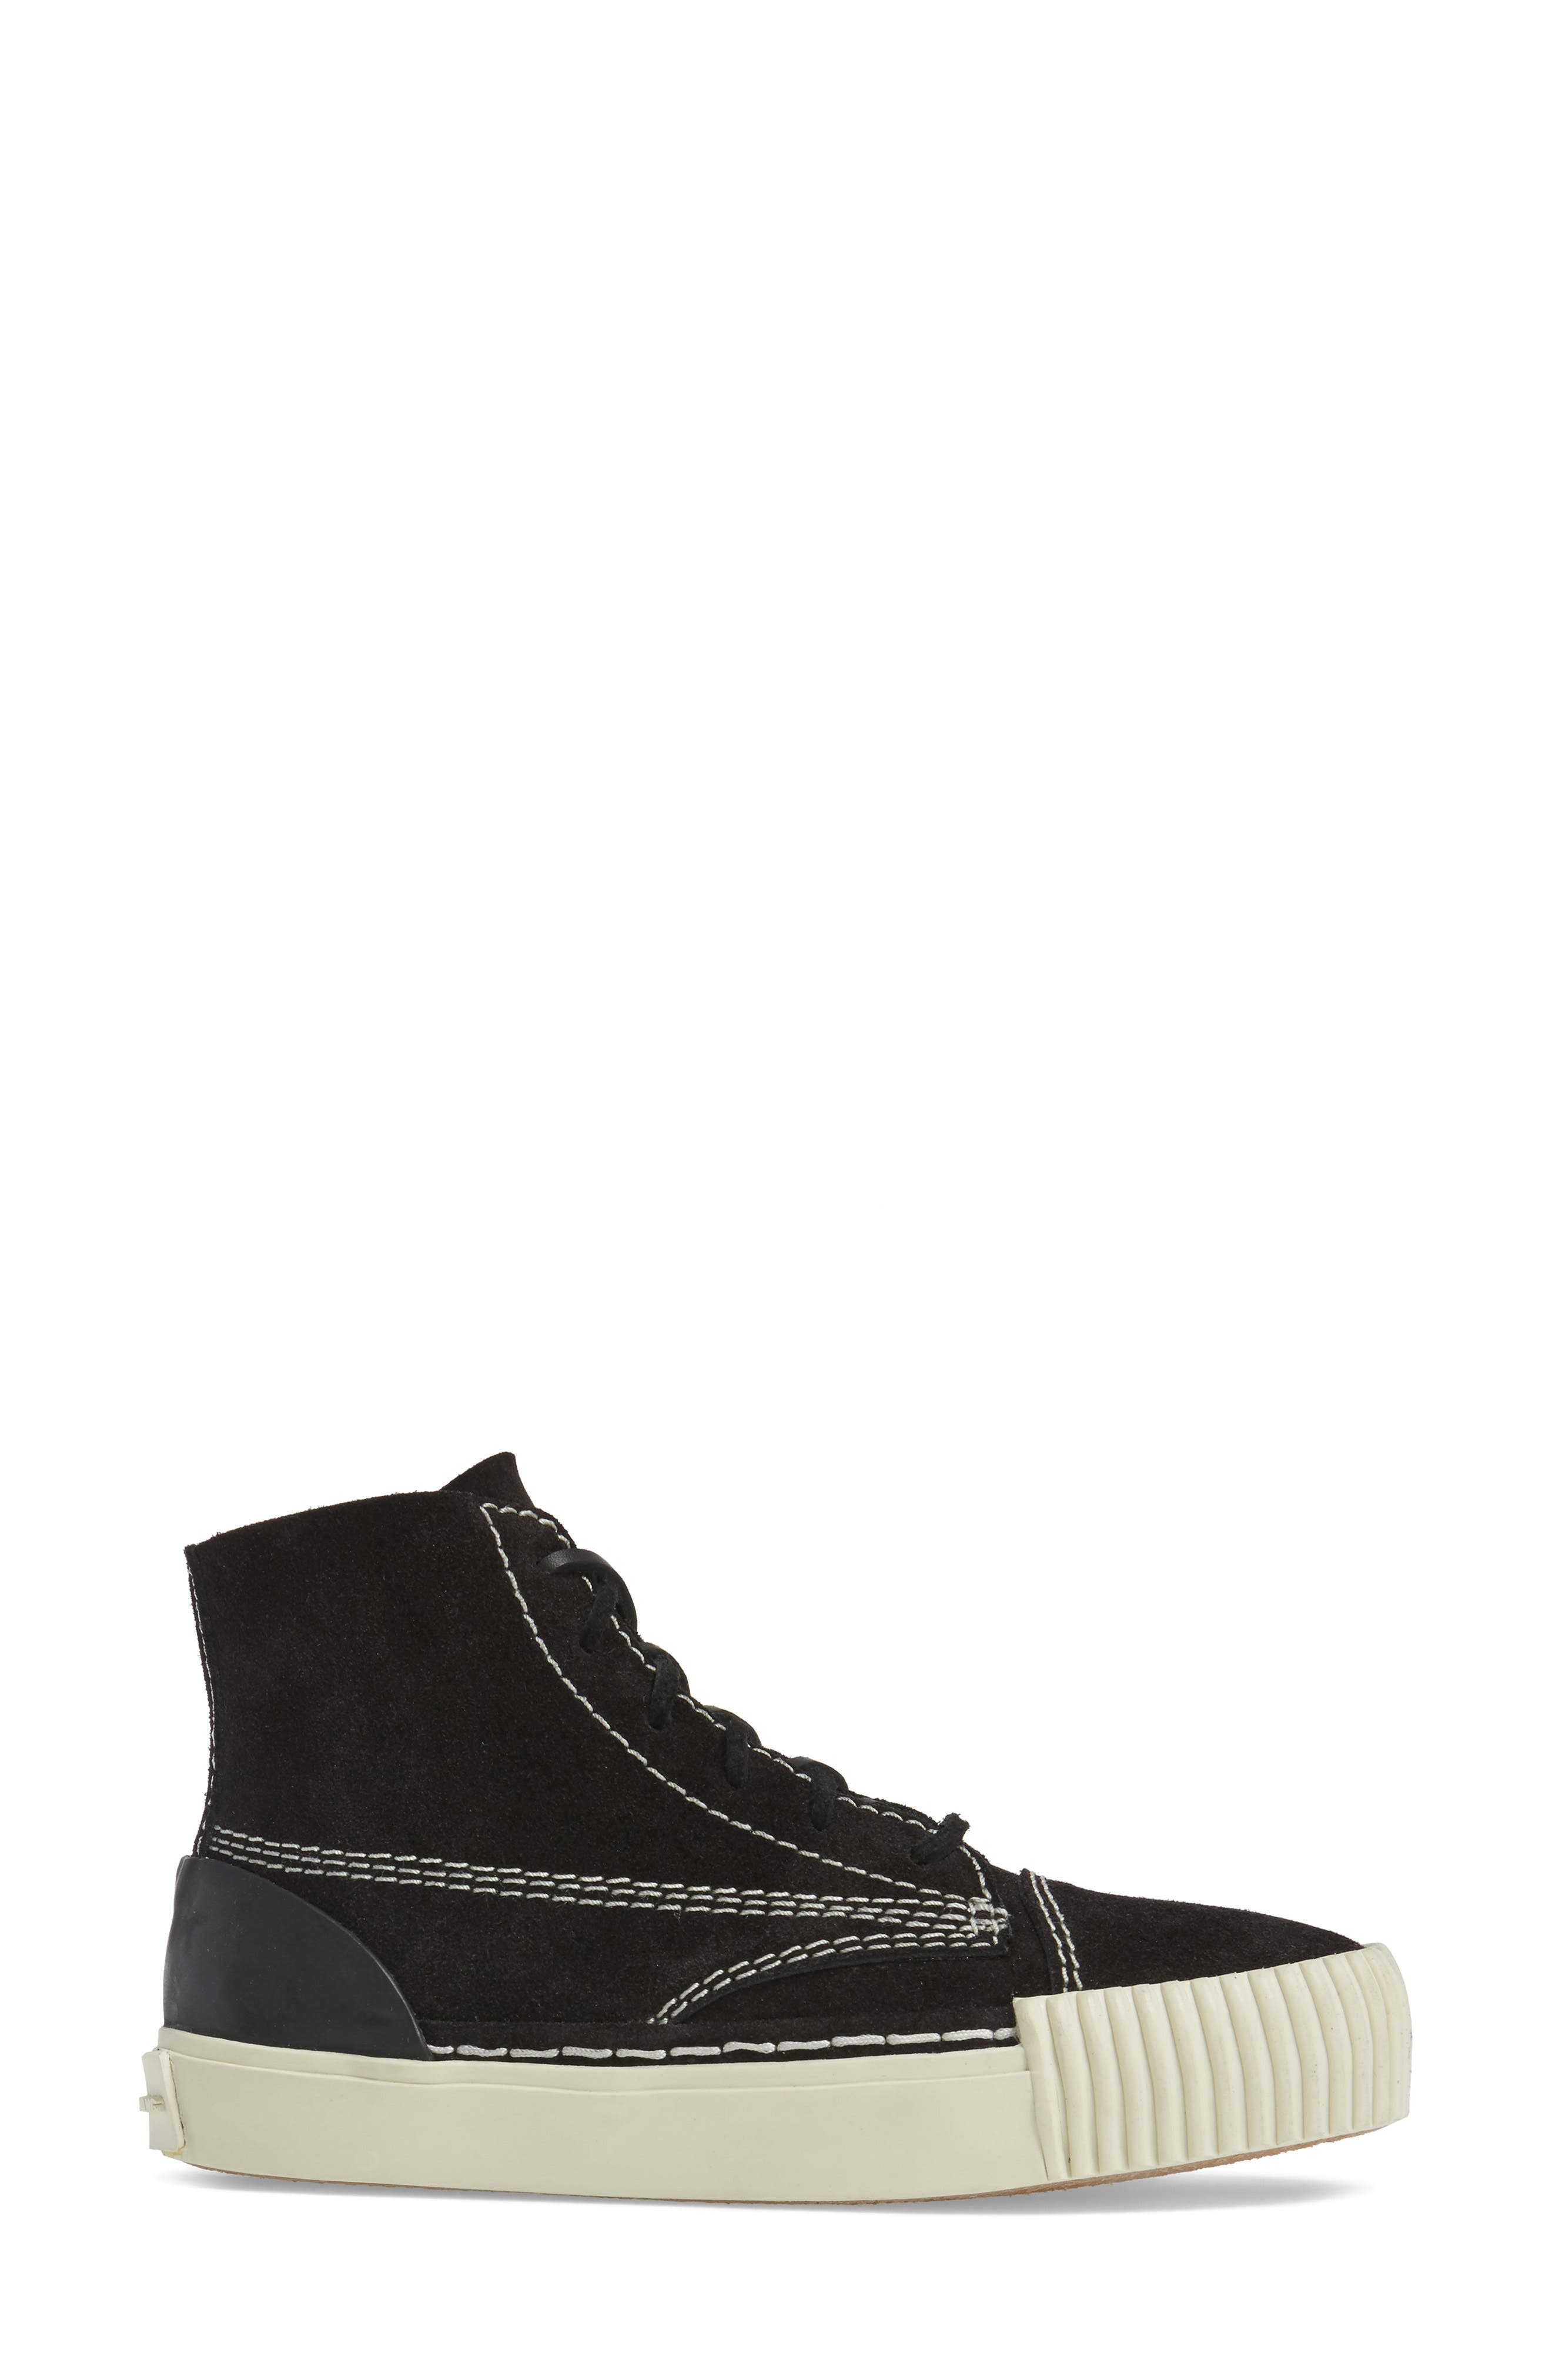 'Perry' Suede High Top Sneaker,                             Alternate thumbnail 3, color,                             001